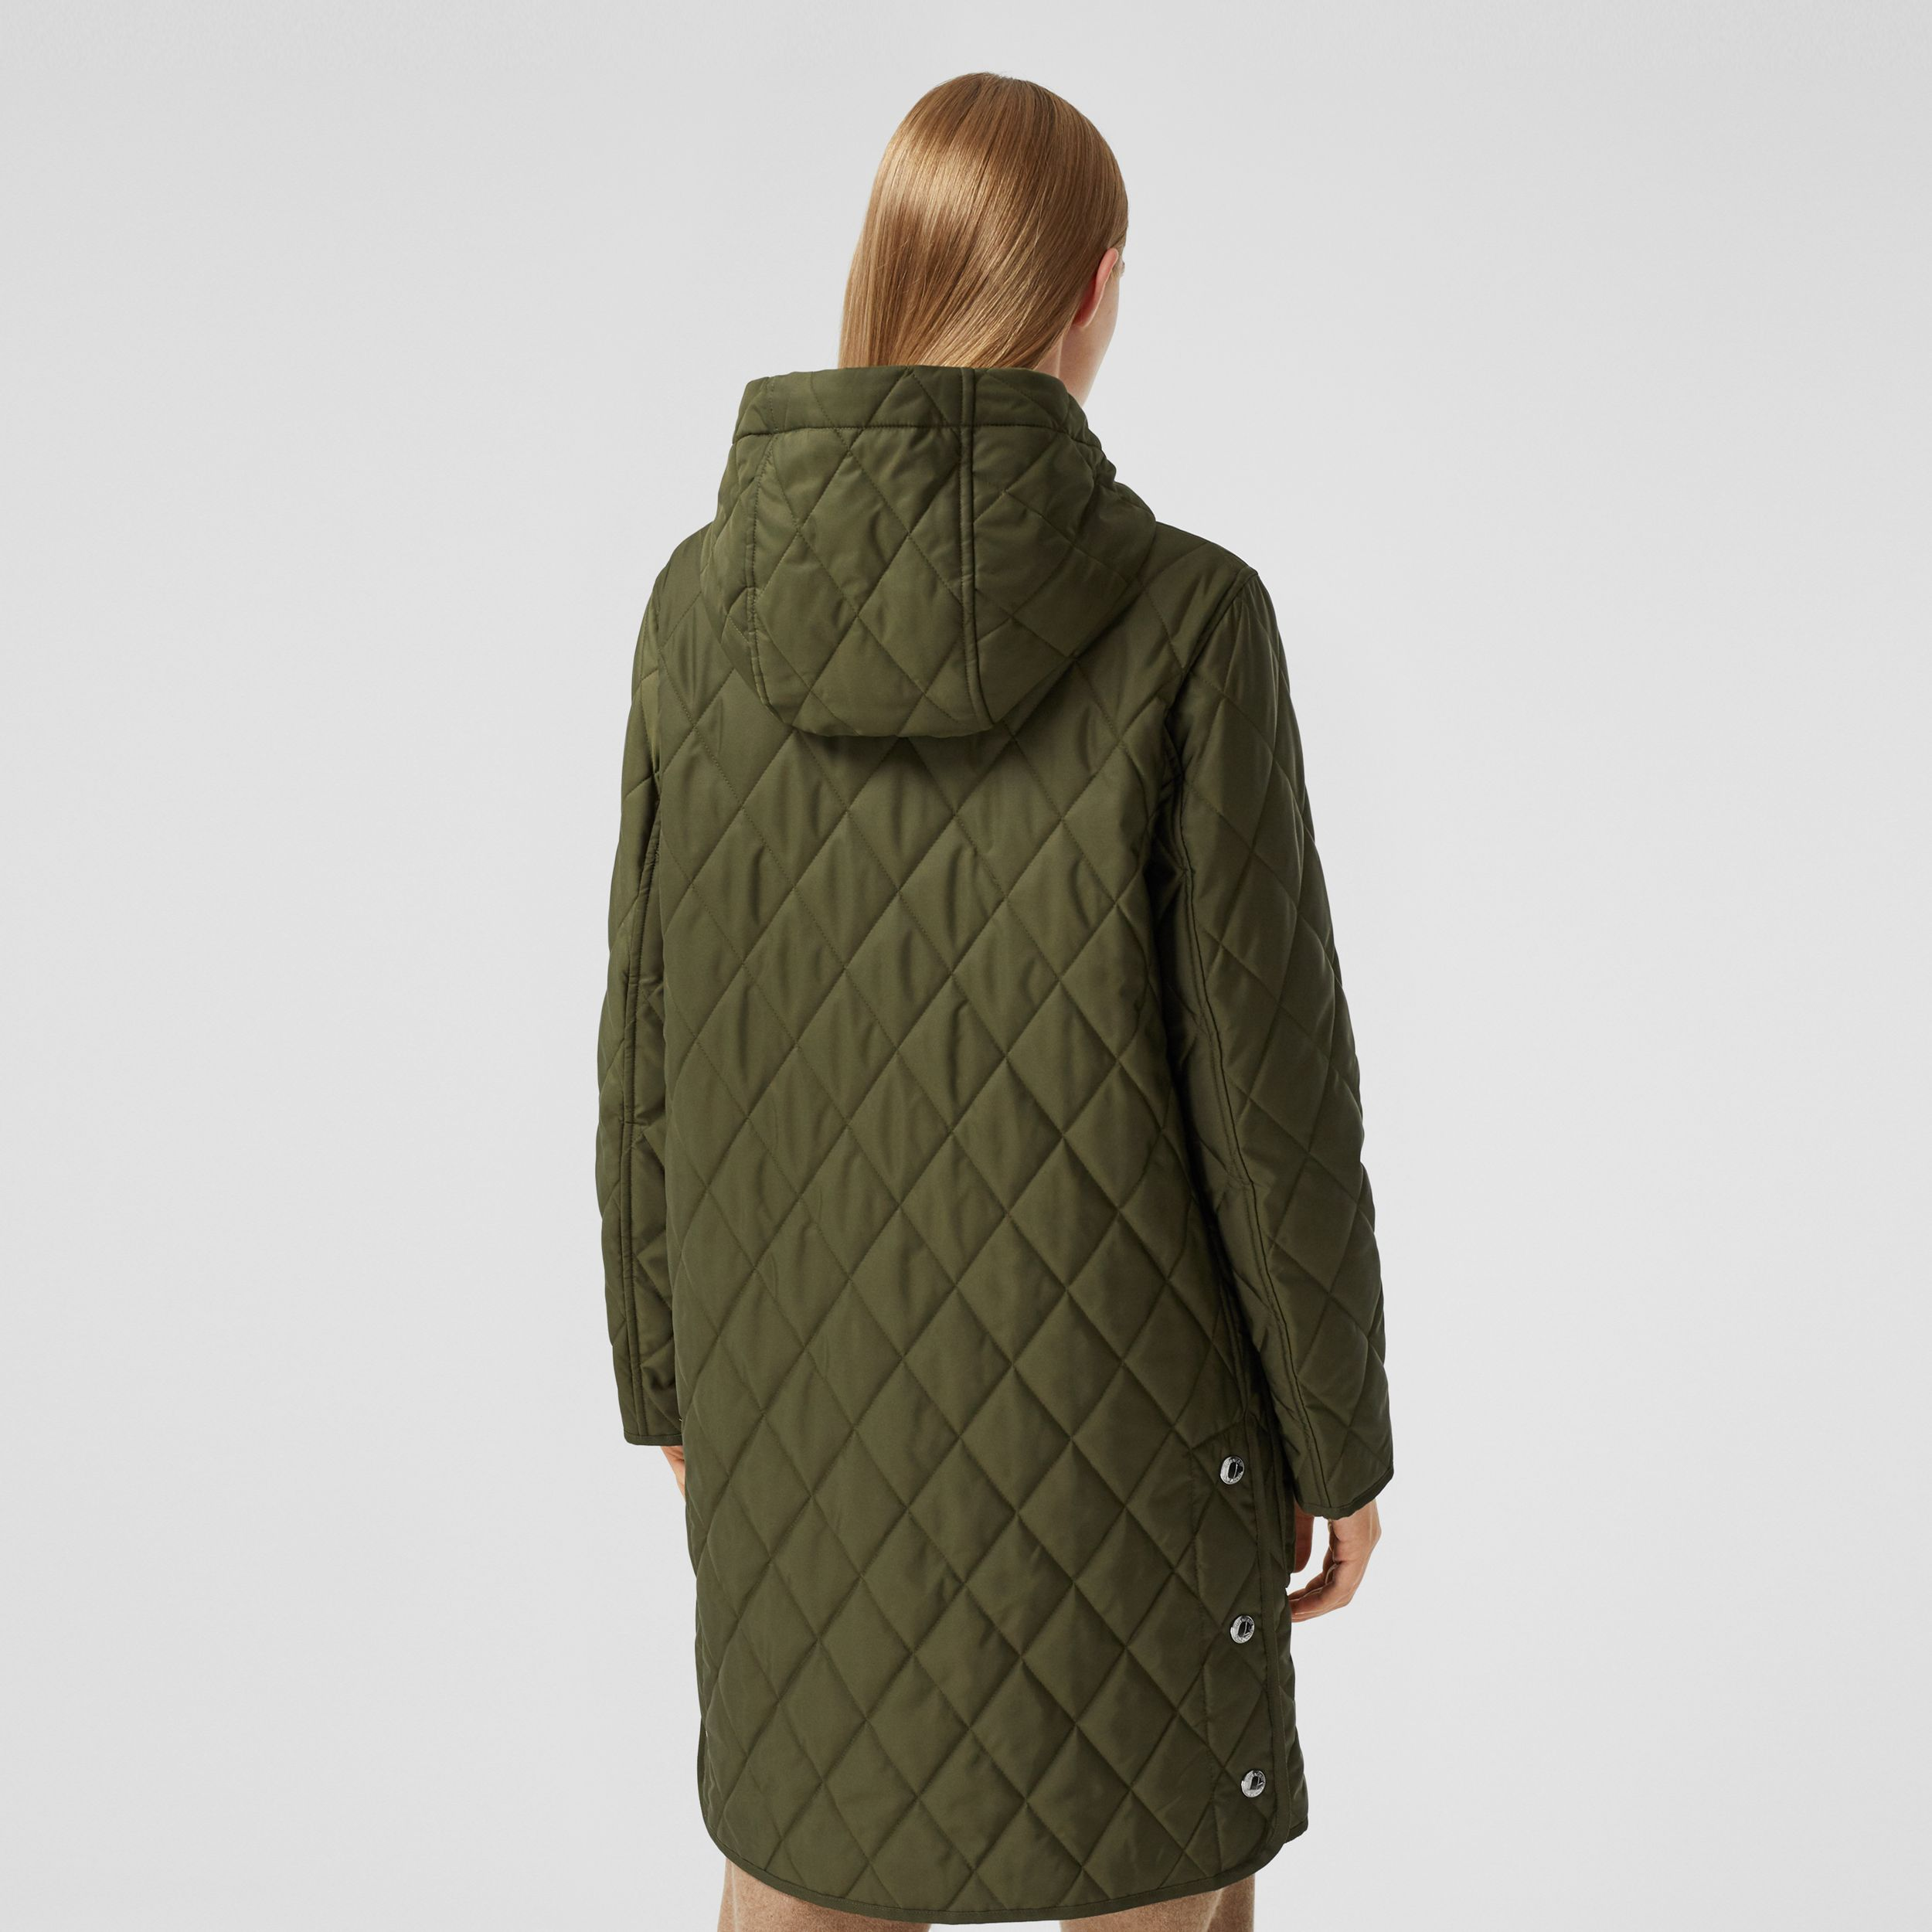 Diamond Quilted Thermoregulated Hooded Coat in Military Green - Women | Burberry - 3